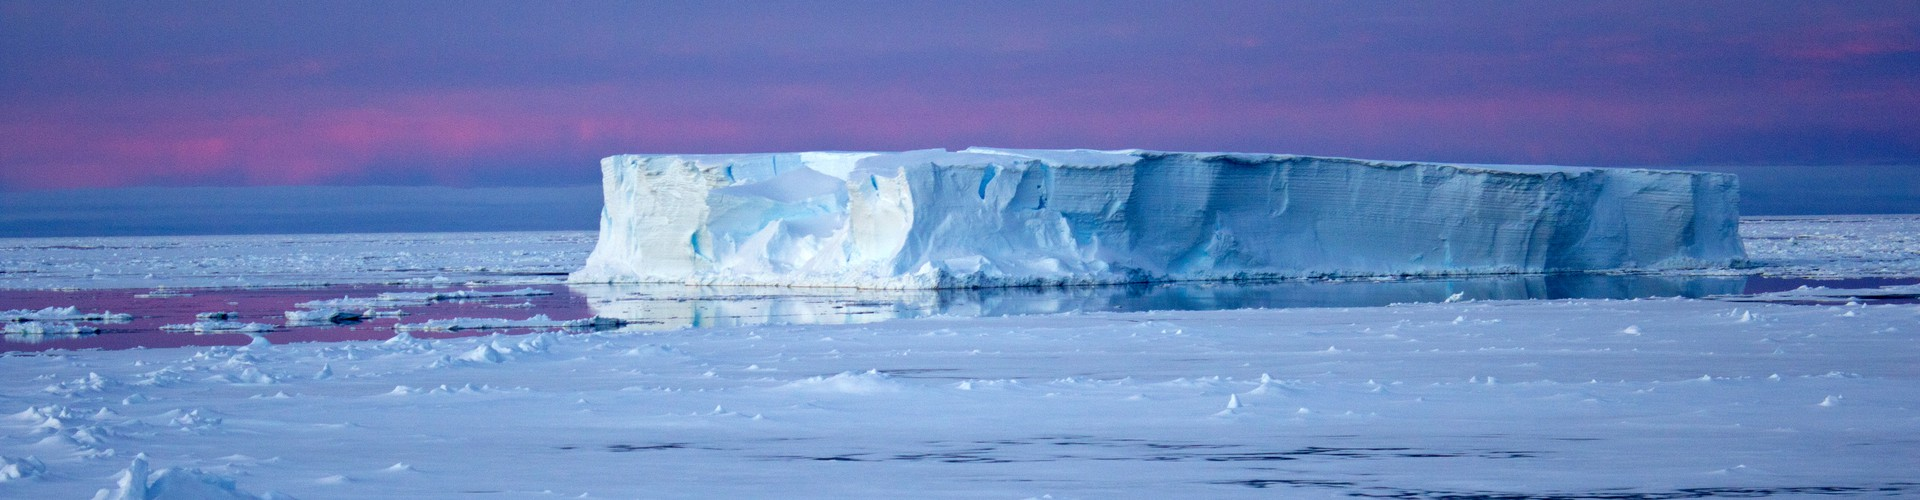 Tabular iceberg surrounded by sea ice in the Antarctic (Credit: Eva Nowatzki, distributed via imaggeo.egu.eu)